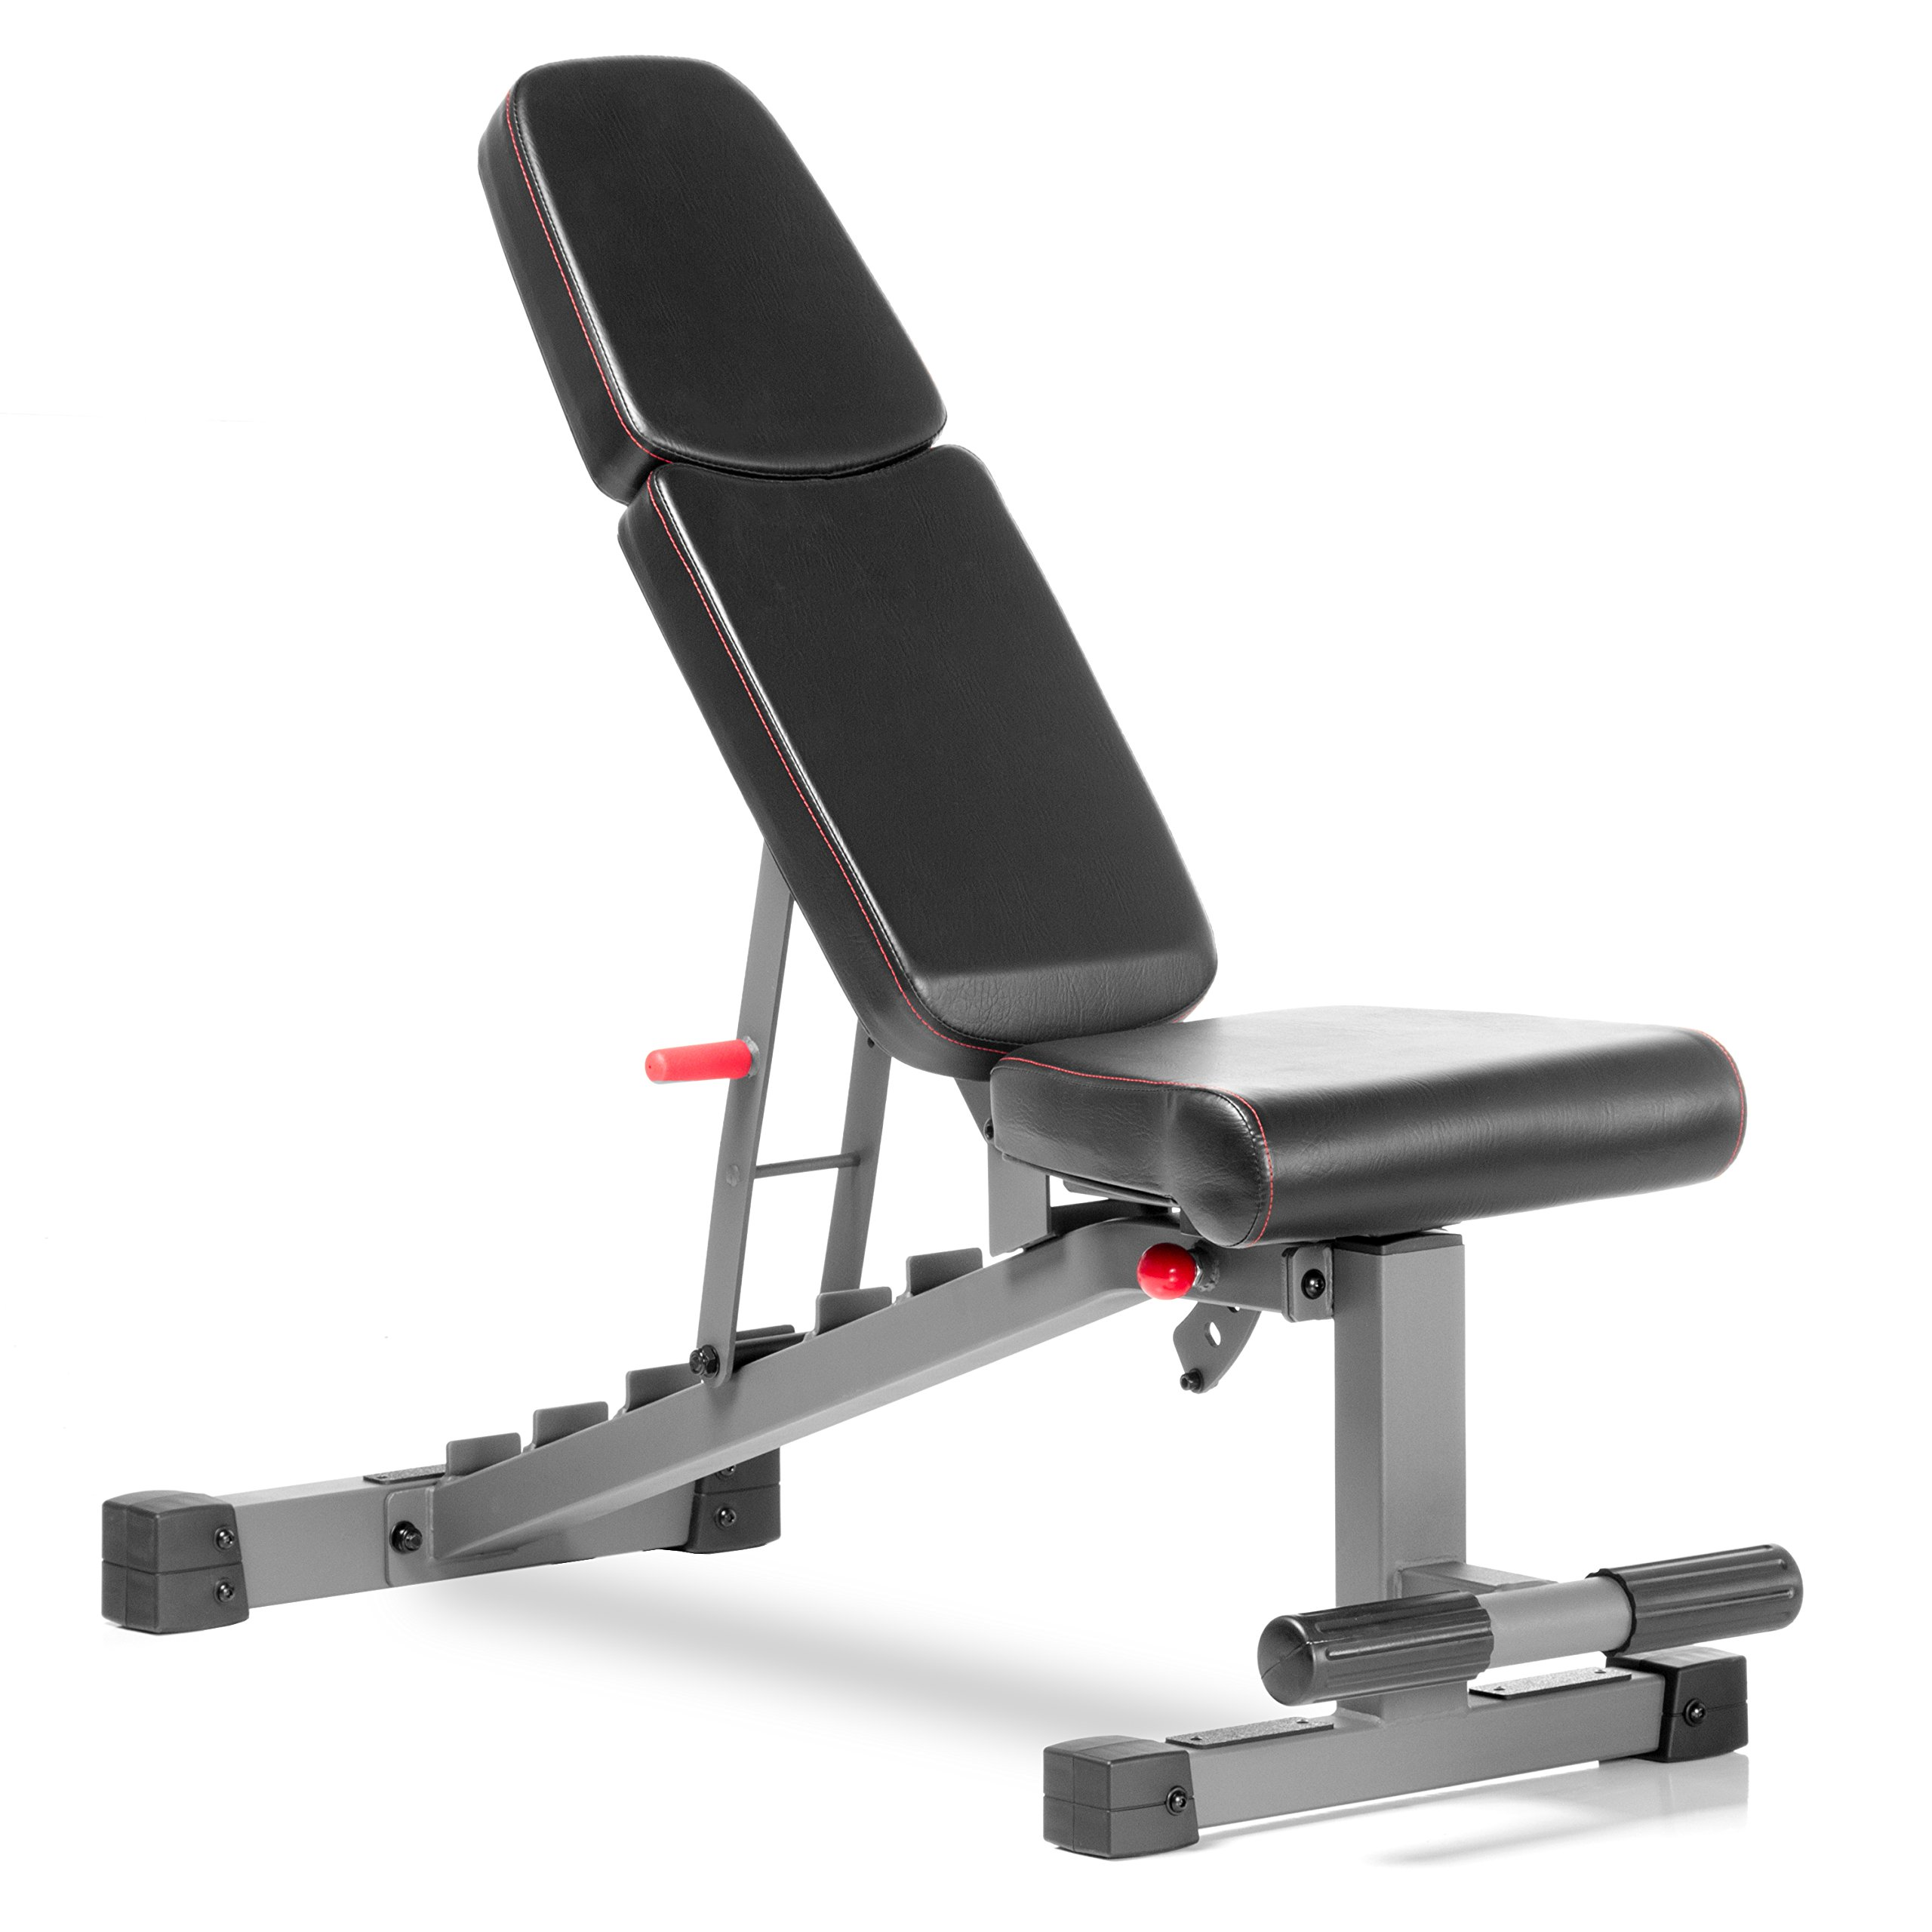 XMark Commercial Flat Incline Decline Weight Bench, 1500 lb Capacity, 7 Back Pad Adjustments From Decline To Military Press, Ergonomic 3 Position Adjustable Seat, and Built In Transport Wheels XM-9022